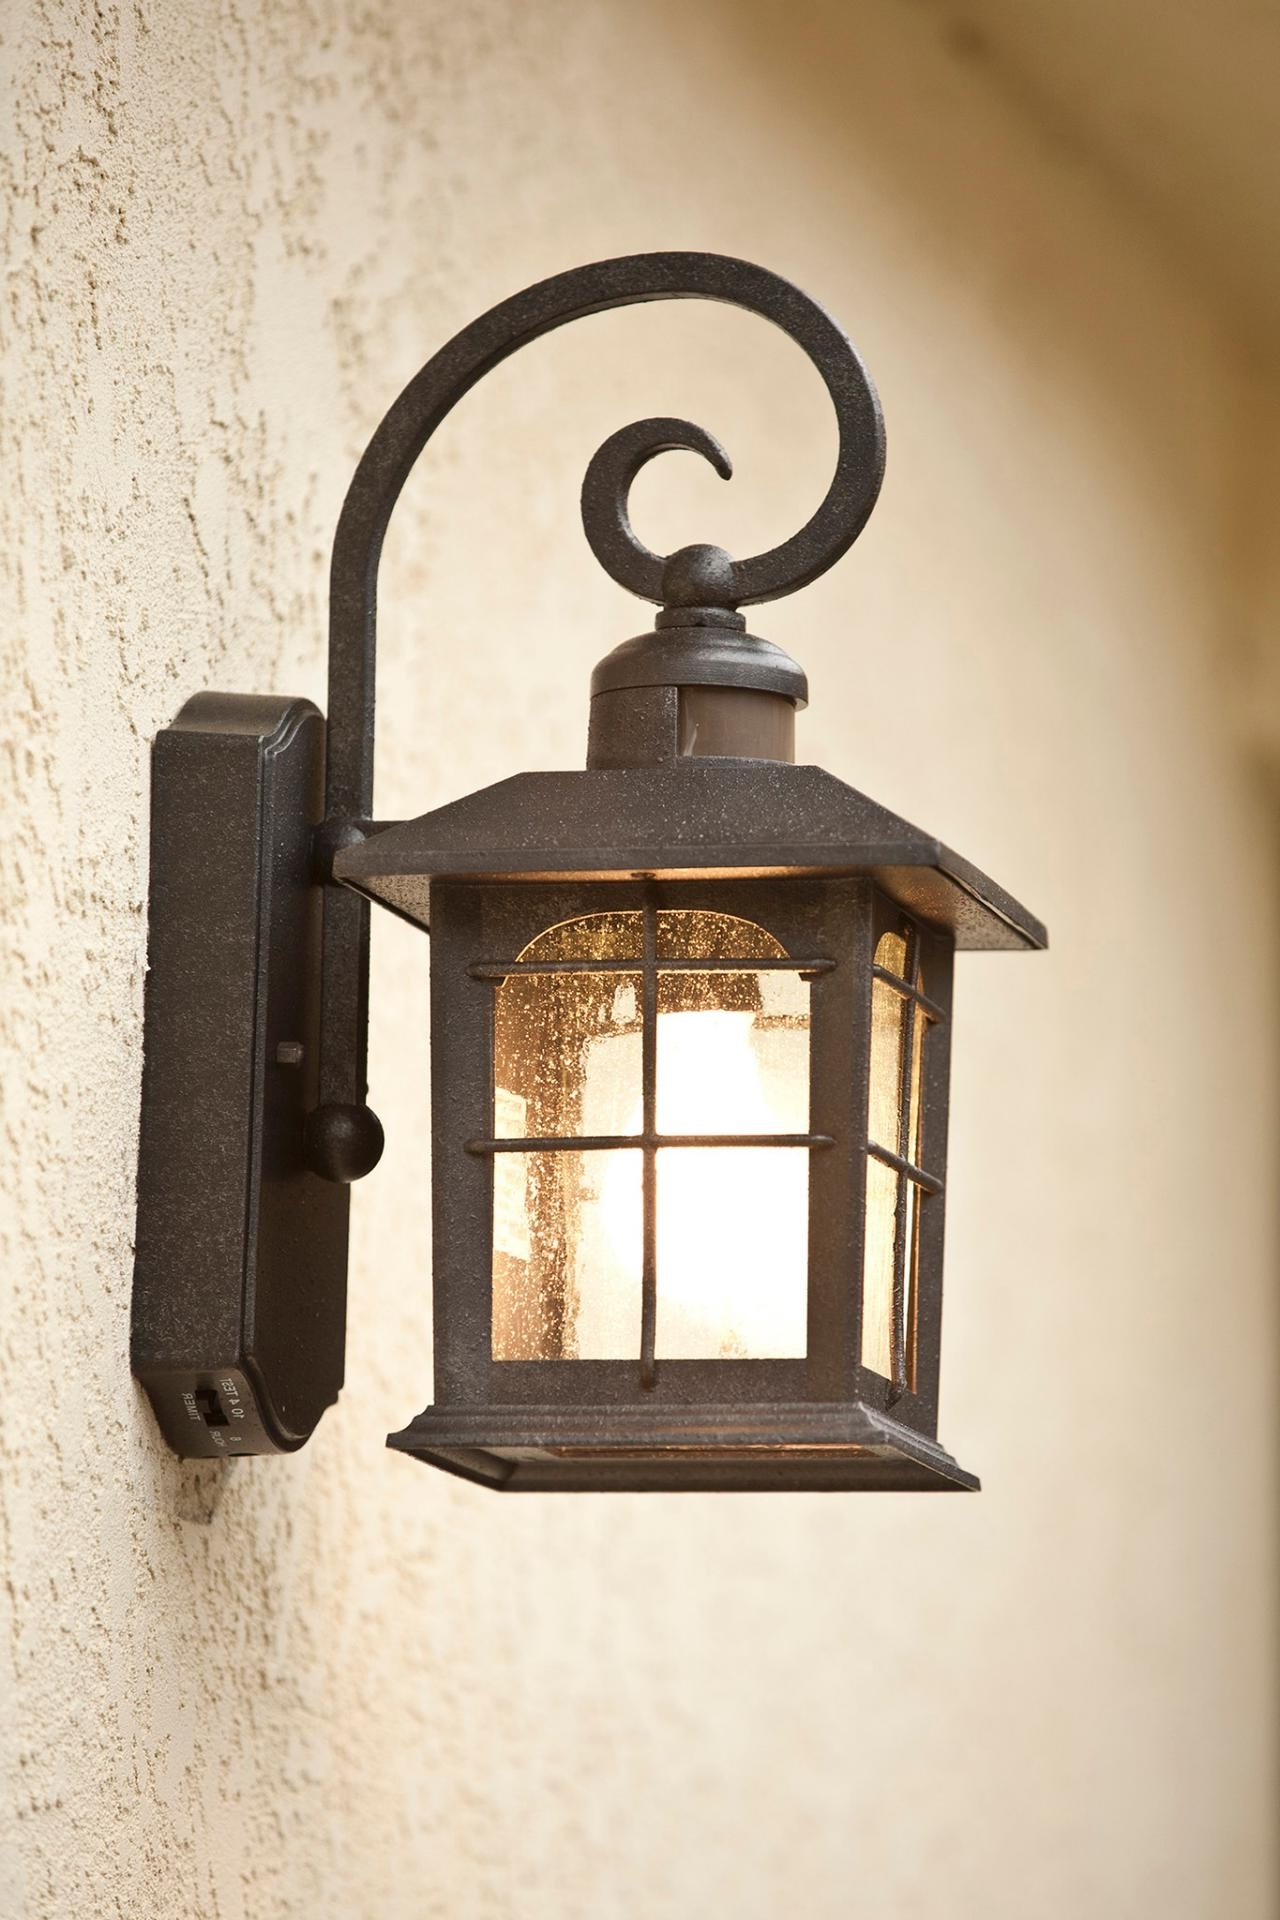 Exciting Lighting Outdoor Hanging Wall Attach Design Using Splendid With Popular Outdoor Hanging Wall Lanterns (View 16 of 20)